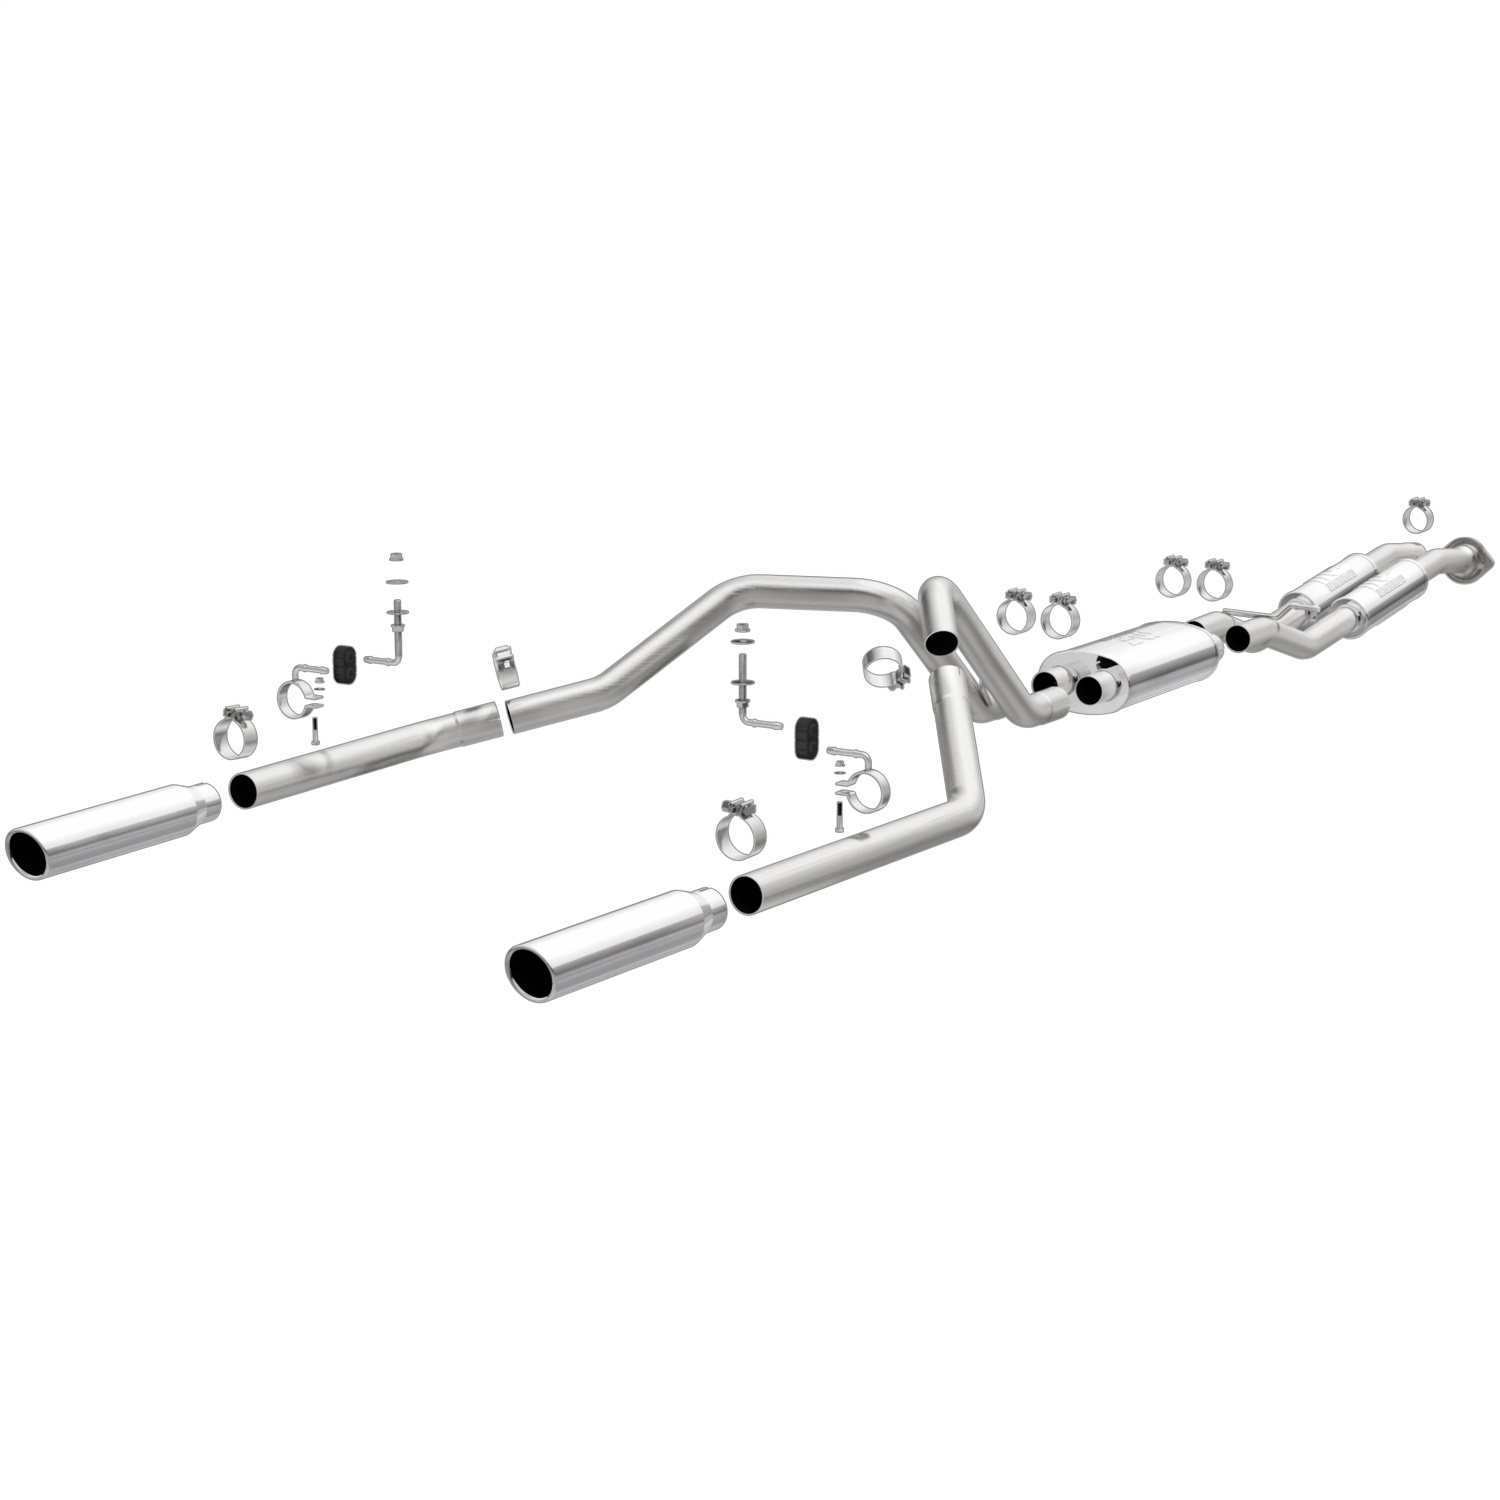 magnaflow performance exhaust 15840 exhaust system kit